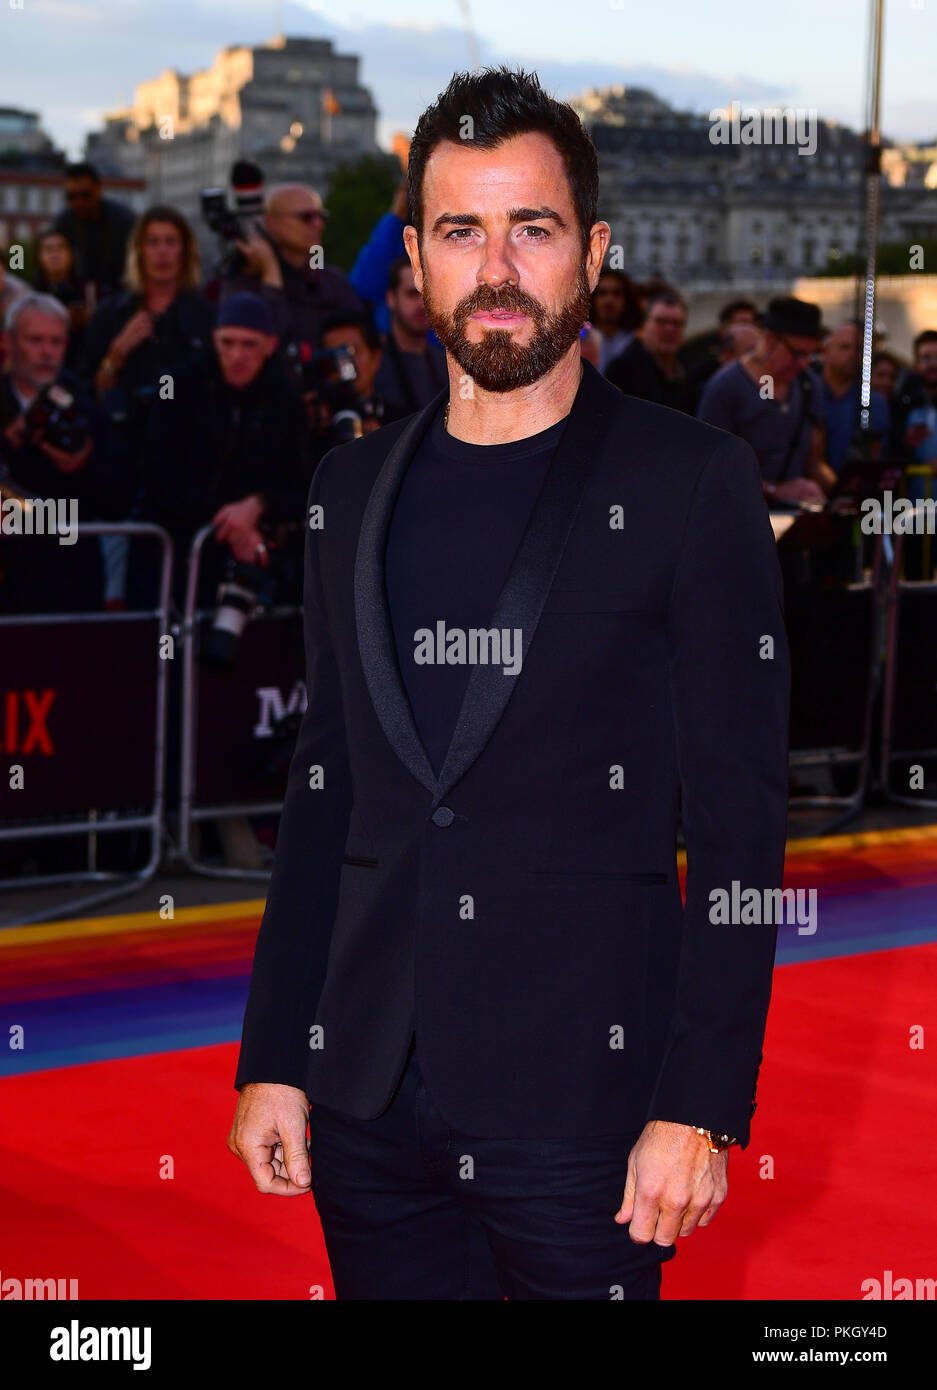 Justin Theroux attending the Maniac World Premiere at the Southbank Centre, London. - Stock Image